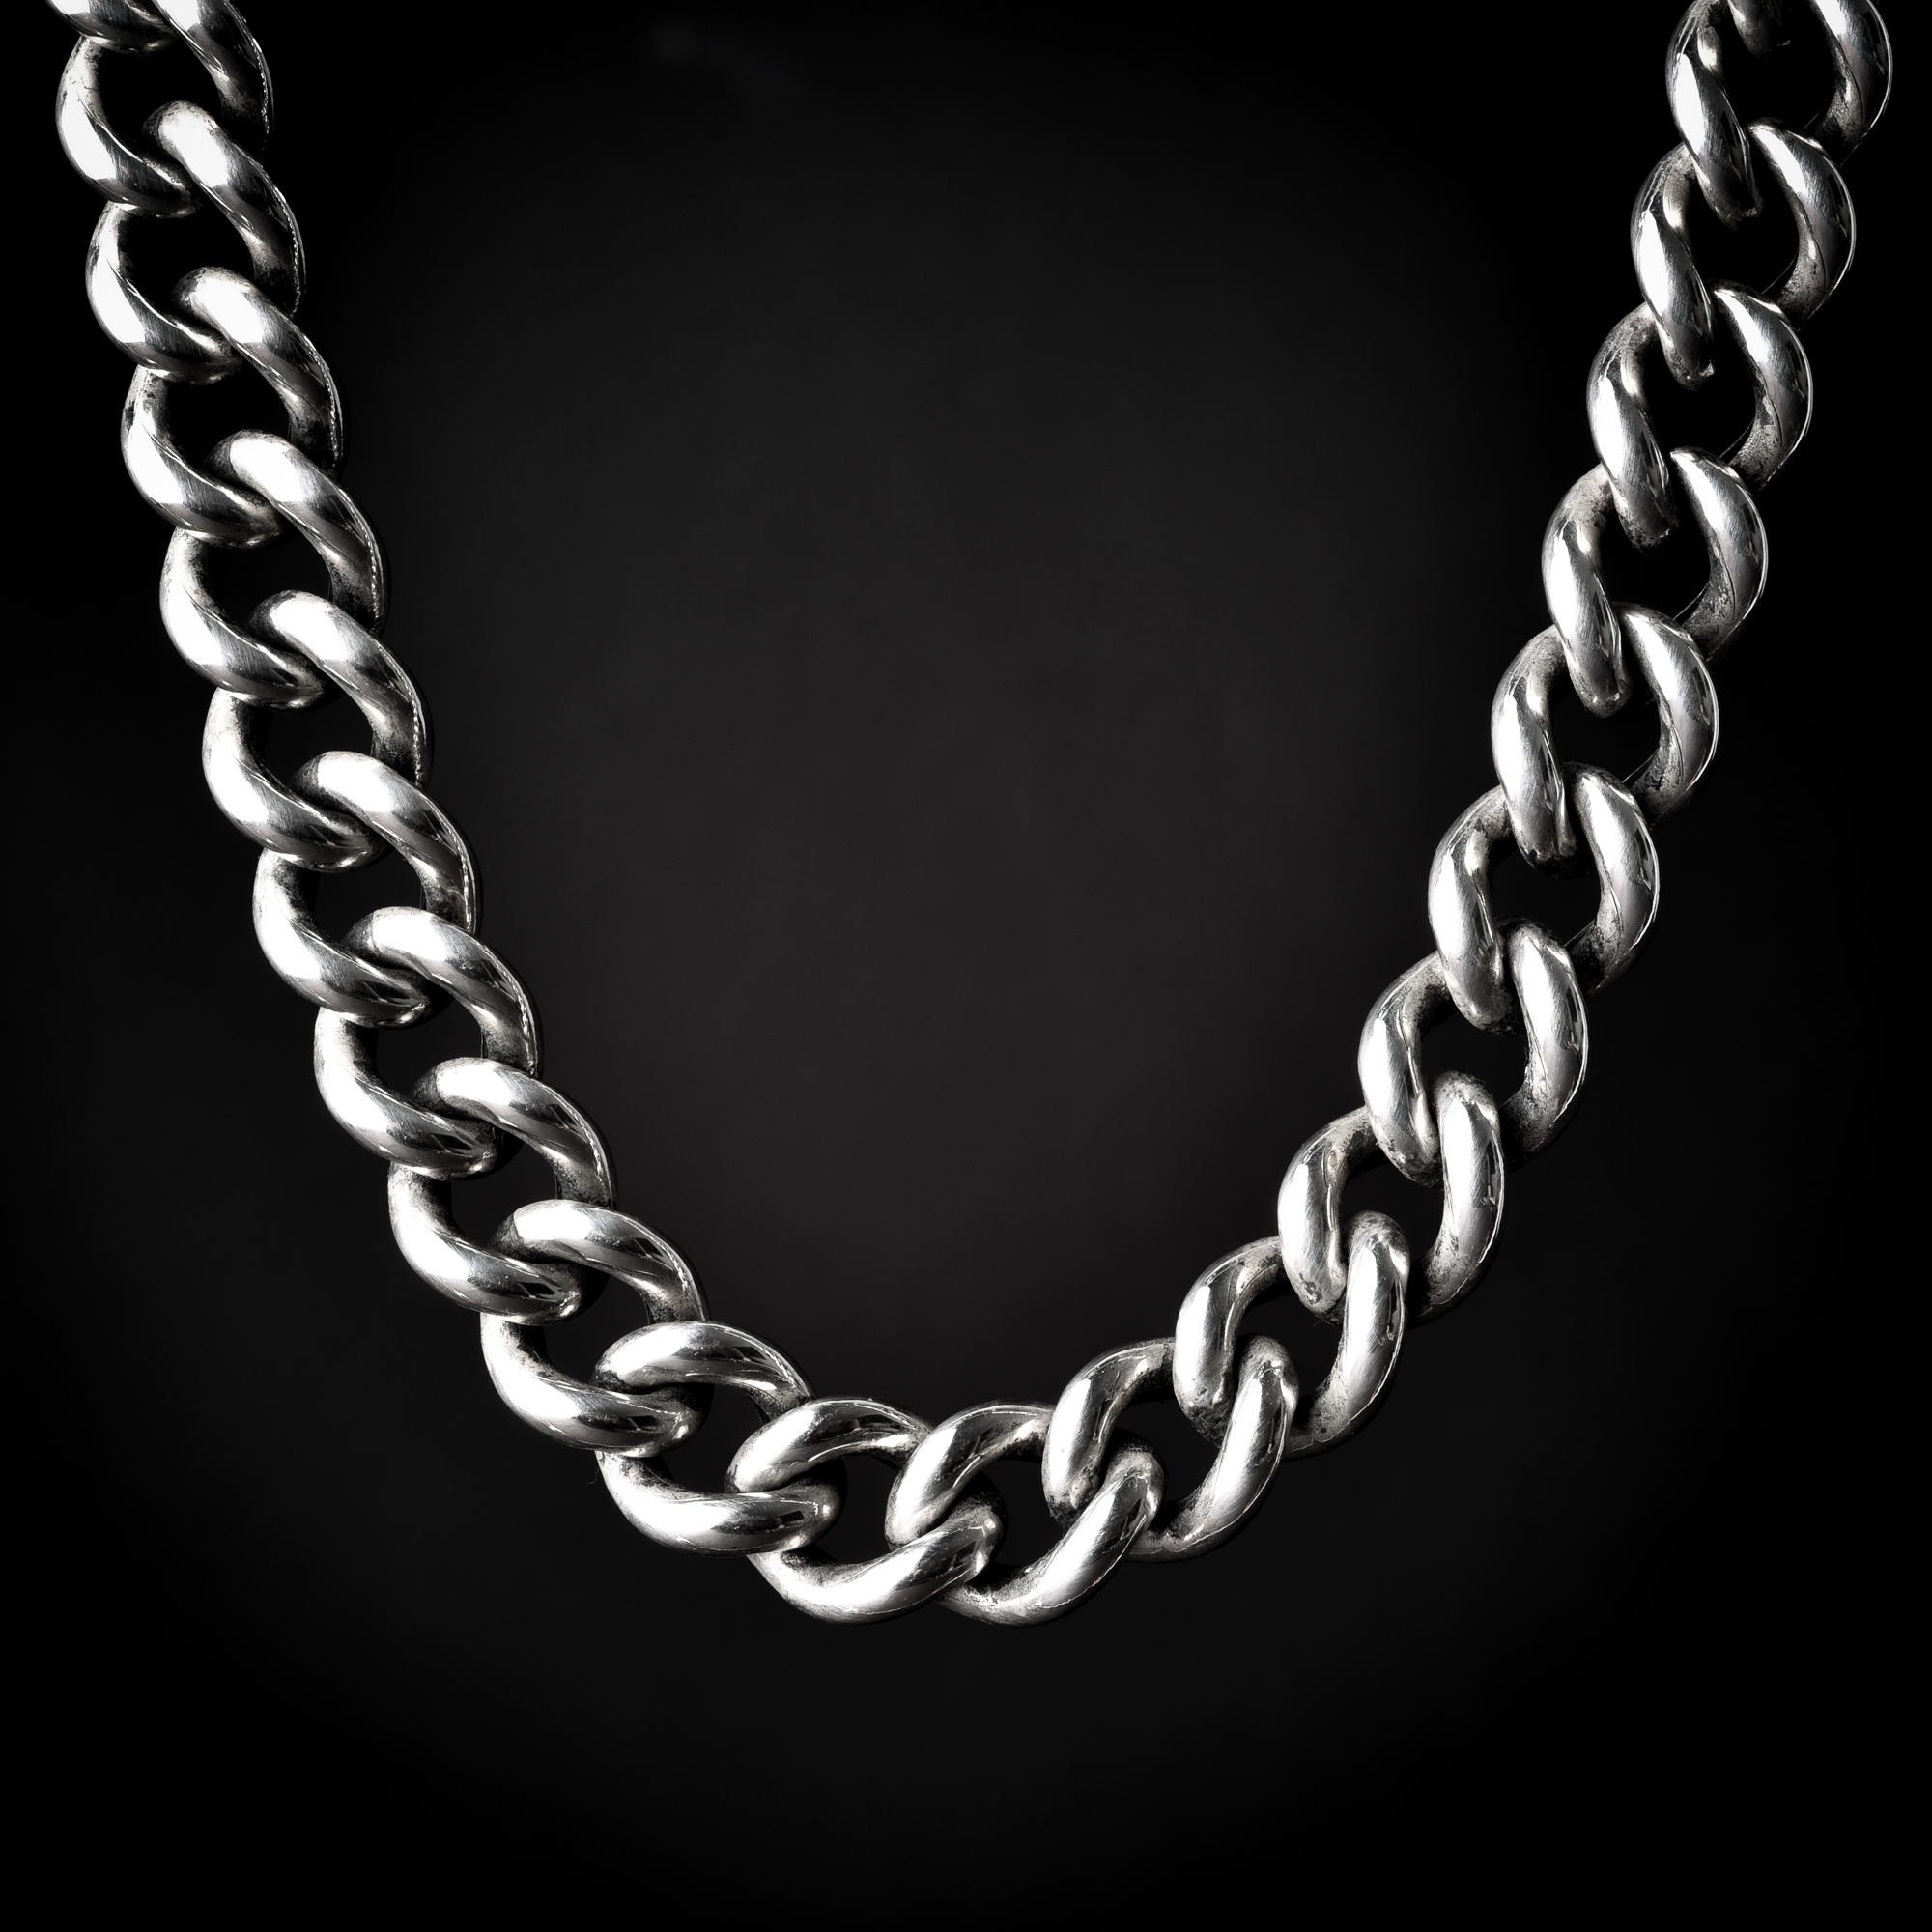 chain boutique morenista necklace all more large that pendant product inch